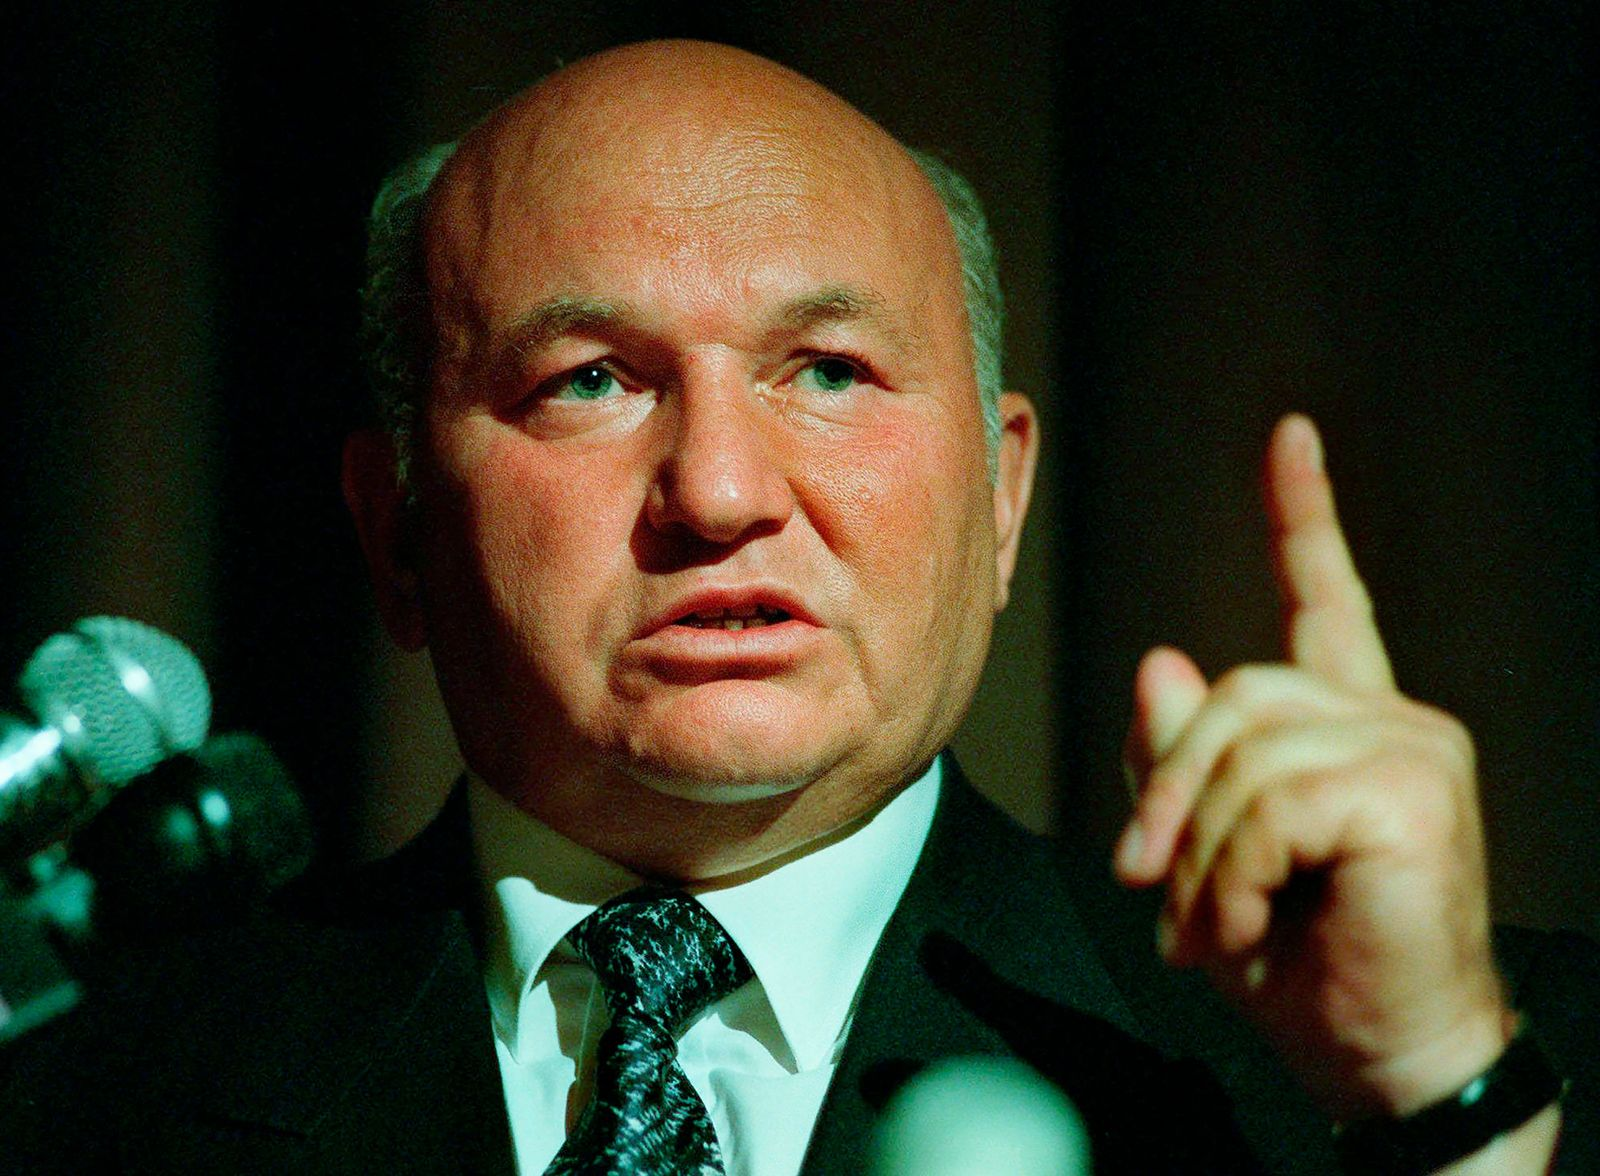 FILE - In this Monday, July 28, 1997 file photo, Moscow mayor Yuri Luzhkov speaks at the International Conference for Progress and Cooperation Dedicated to the 850th anniversary of the City of Moscow, in Beverly Hills, Calif.{ } (AP Photo/E.J. Flynn, File)